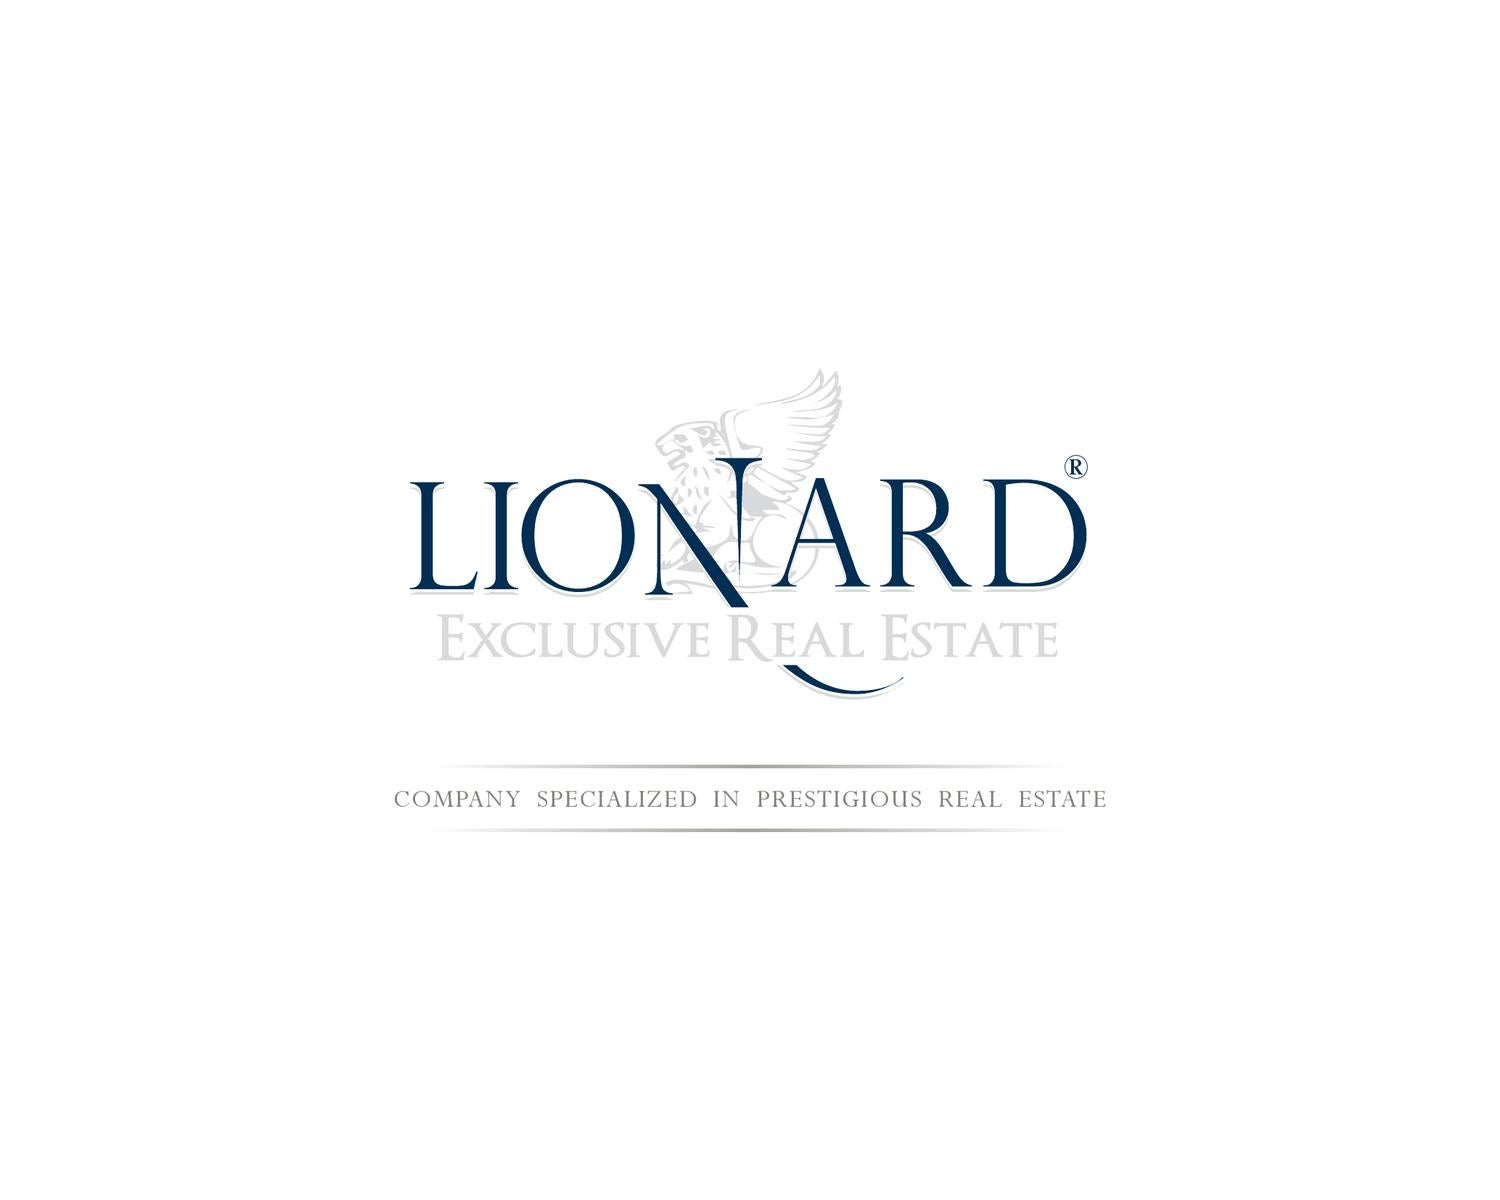 lionard luxury real estate vendita ville by lionard spa